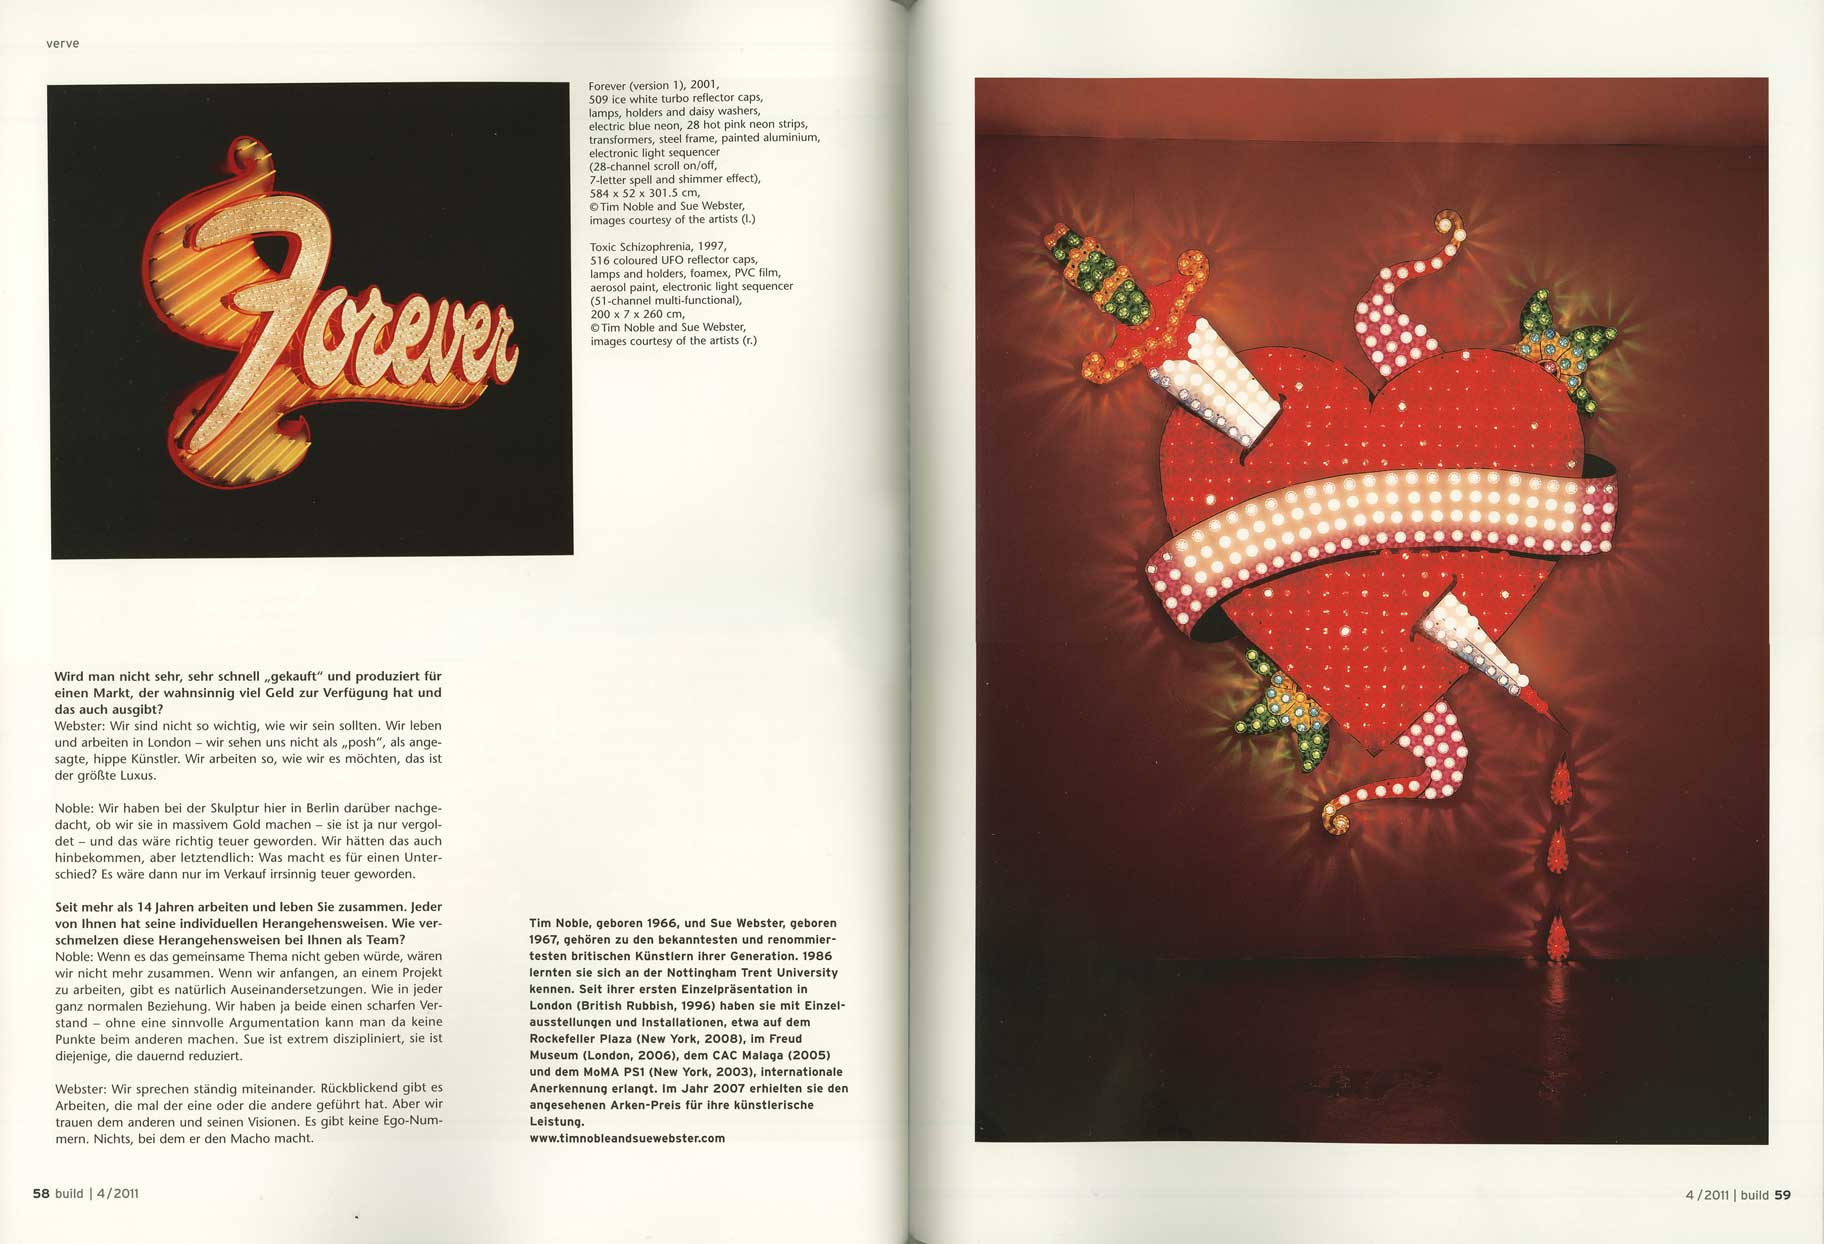 Build Magazine, 2011 pgs 58-59